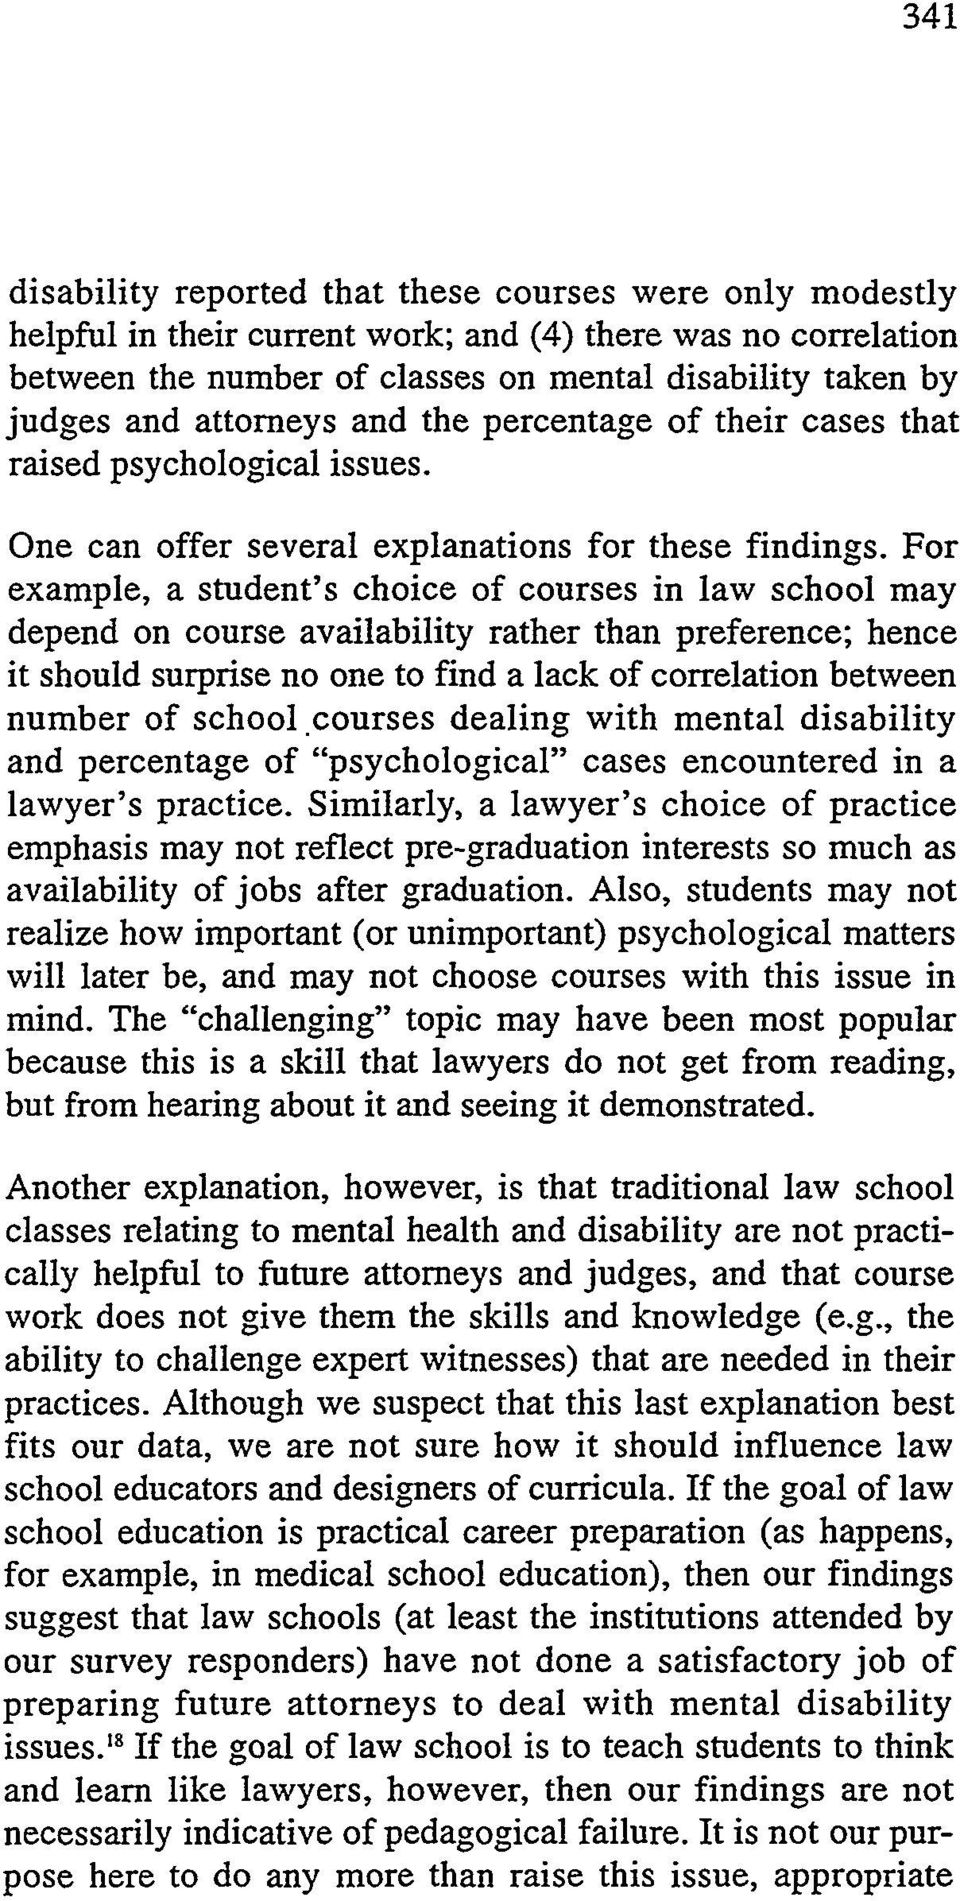 For example, a student's choice of courses in law school may depend on course availability rather than preference; hence it should surprise no one to find a lack of correlation between number of